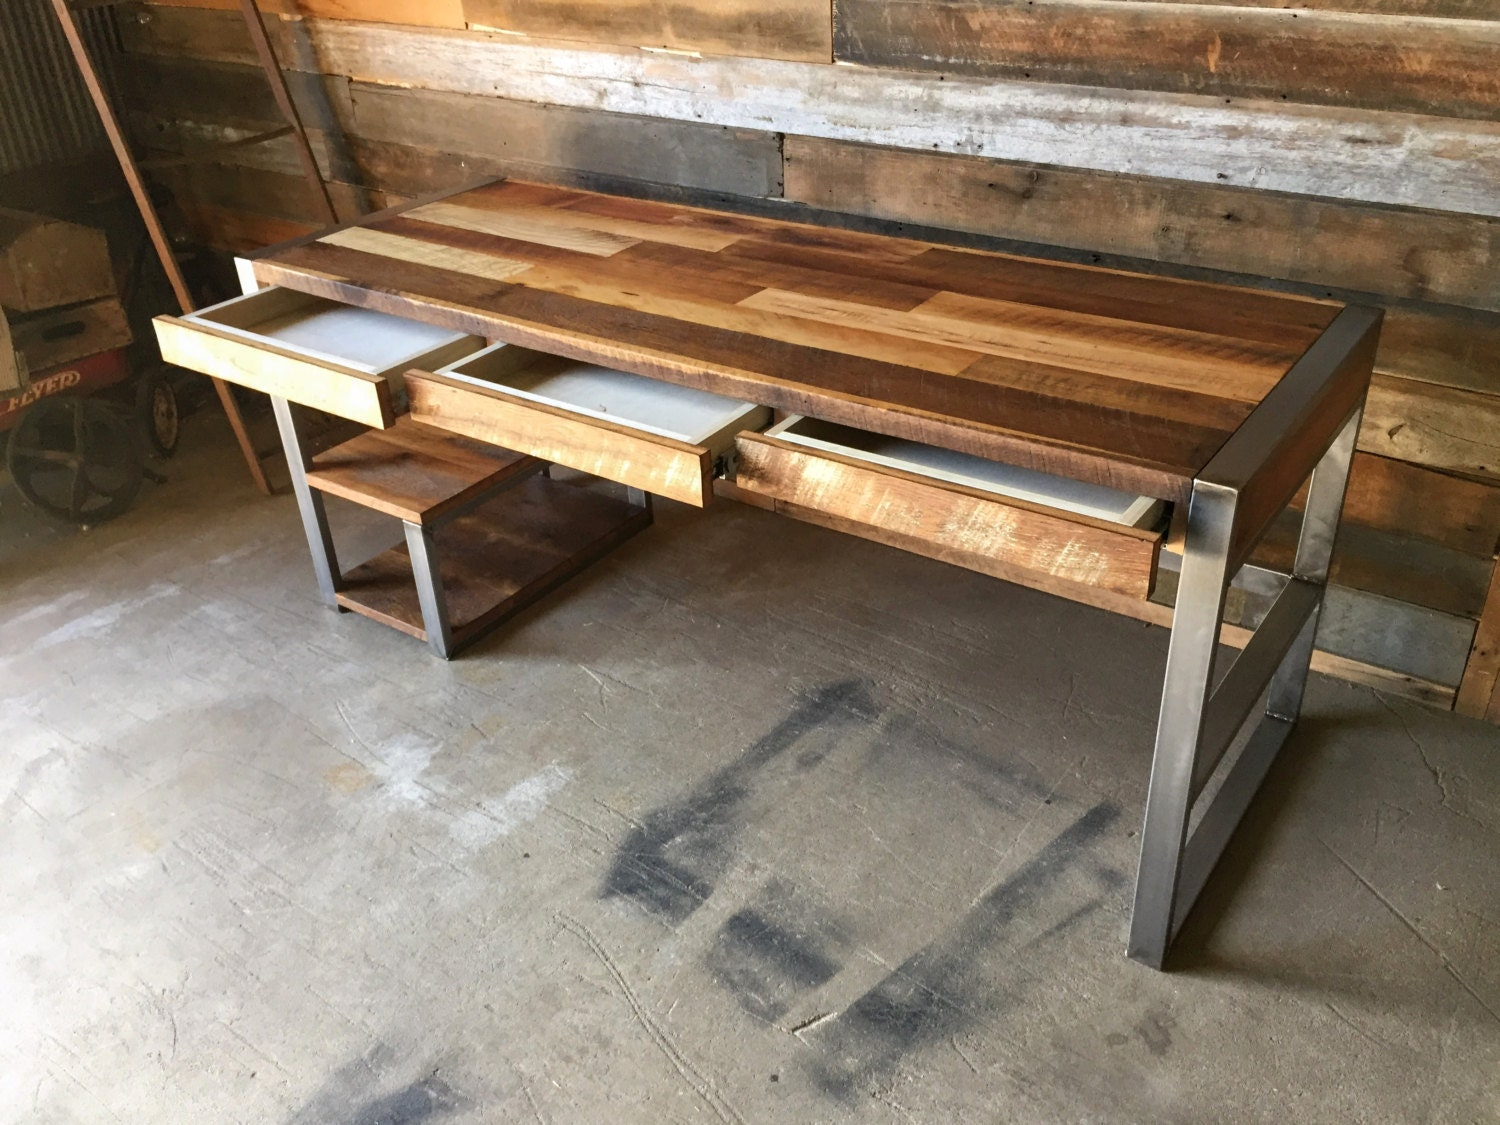 Reclaimed Wood Desk With Industrial Metal Base And Patchwork